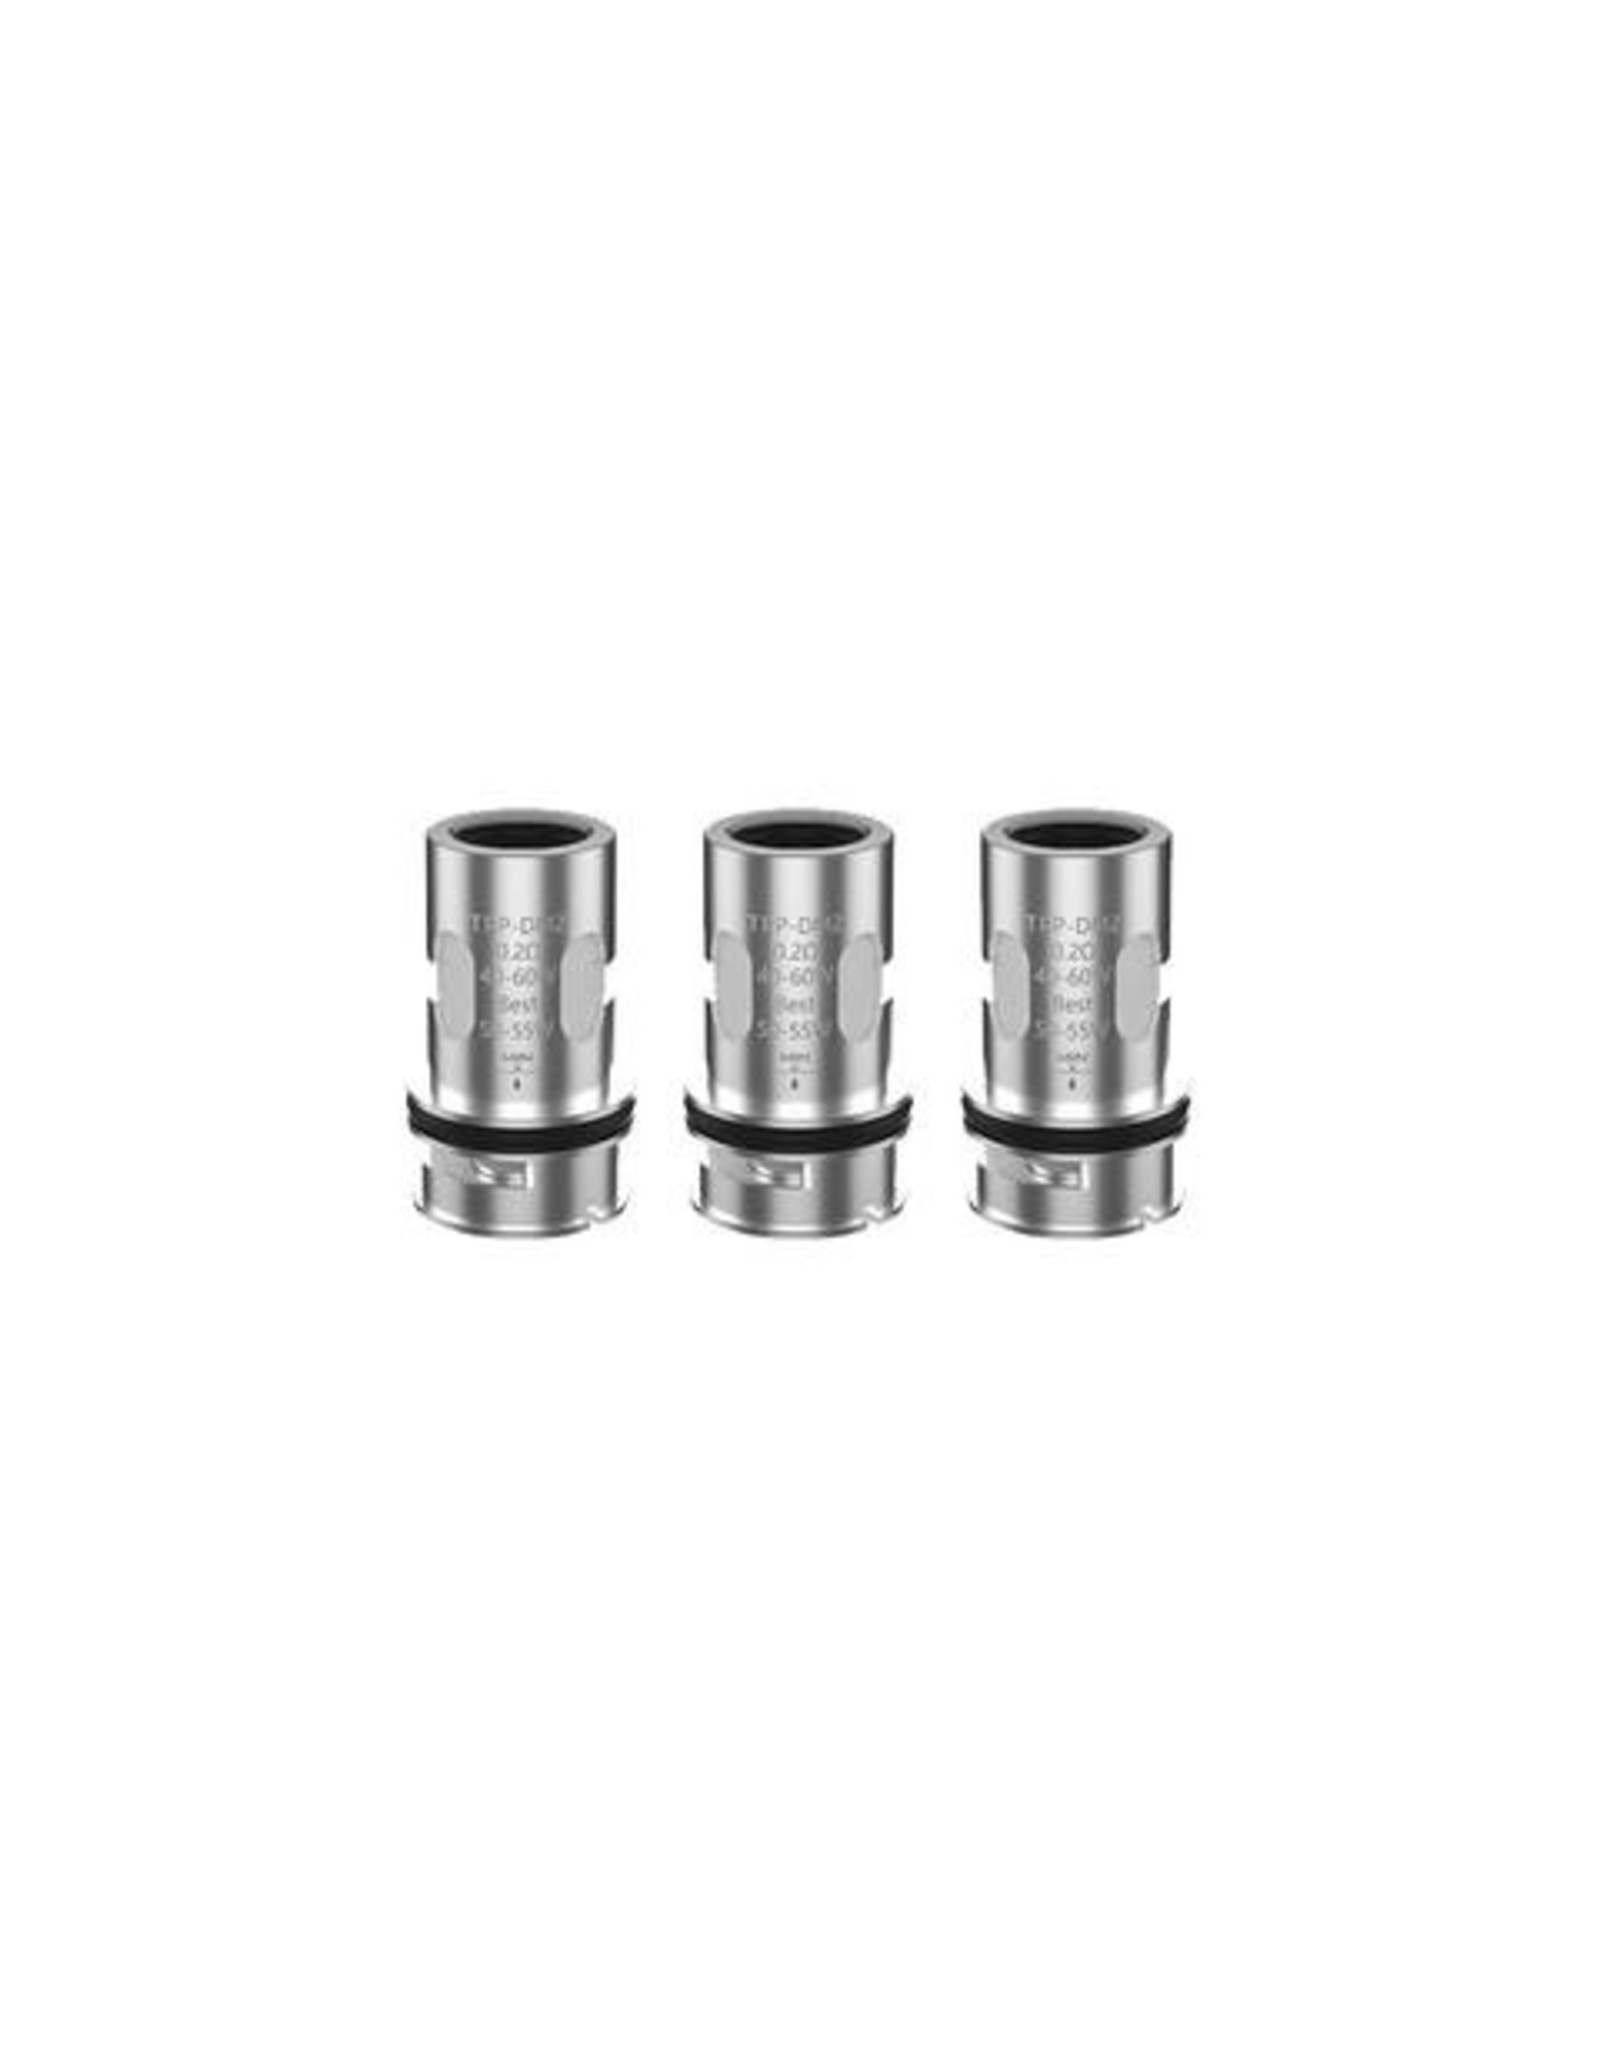 Voopoo VooPoo TPP Replacement Coils